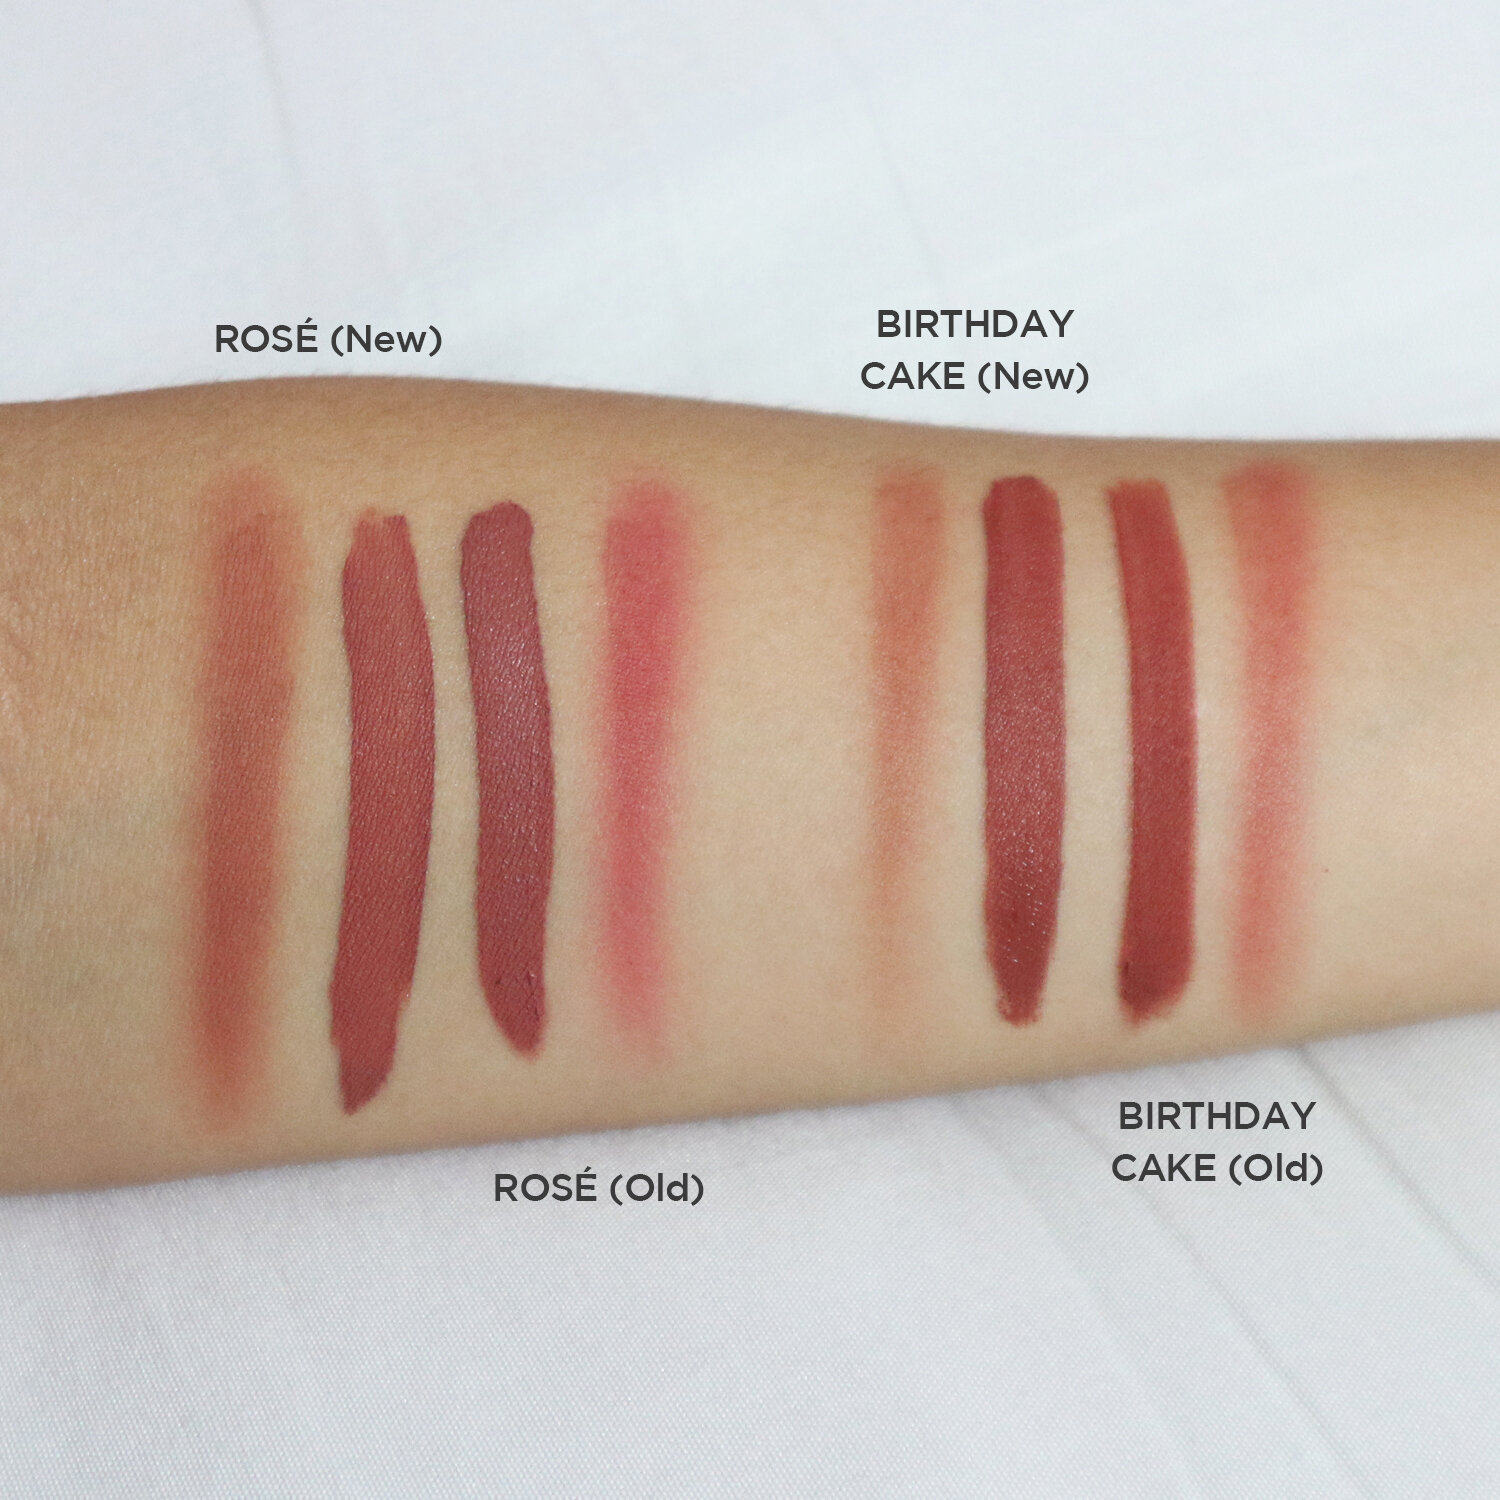 This diffused Rosé took two layers. For the same amount of product, see how more pigmented the old and diffused Birthday Cake is.